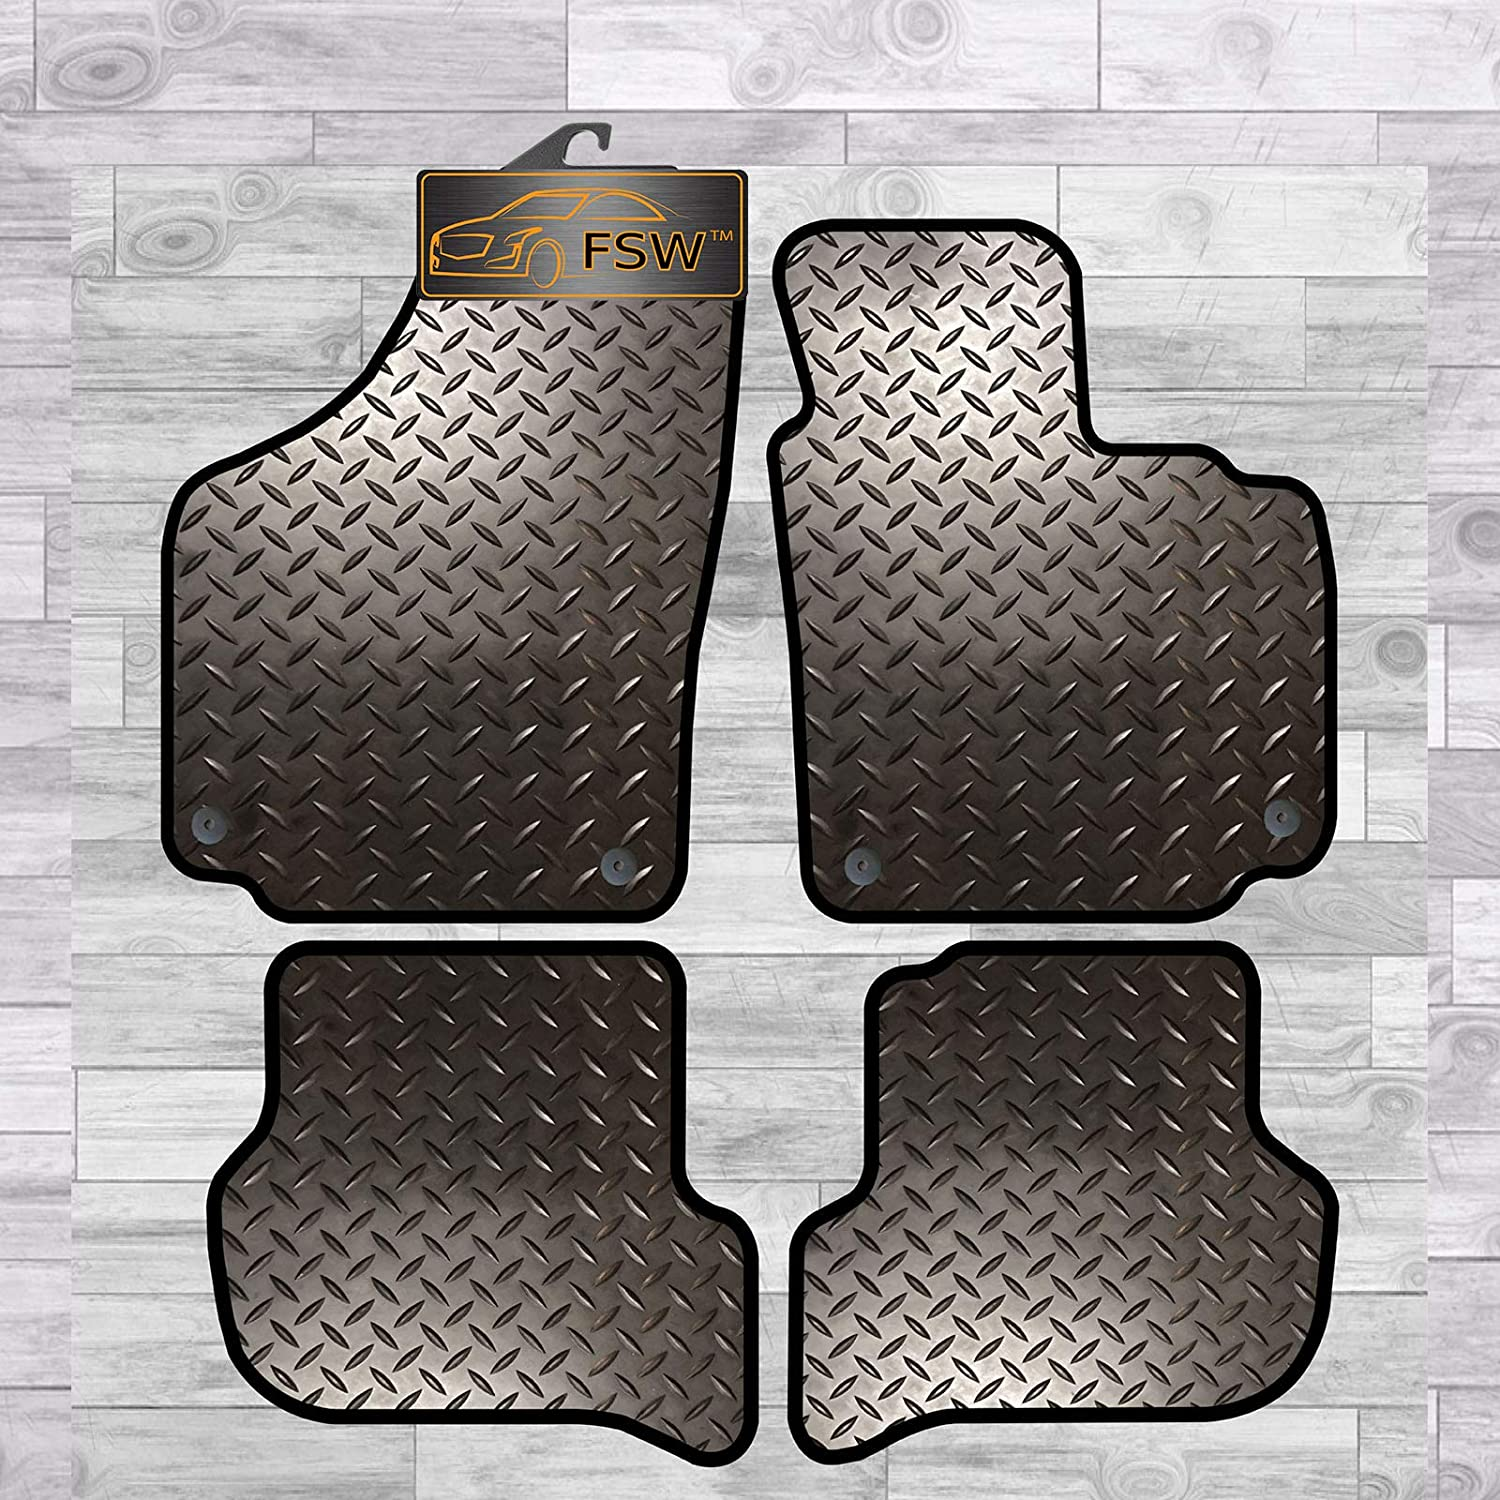 FSW 107 Fully Tailored Classic Carpet Car Floor Mats Black